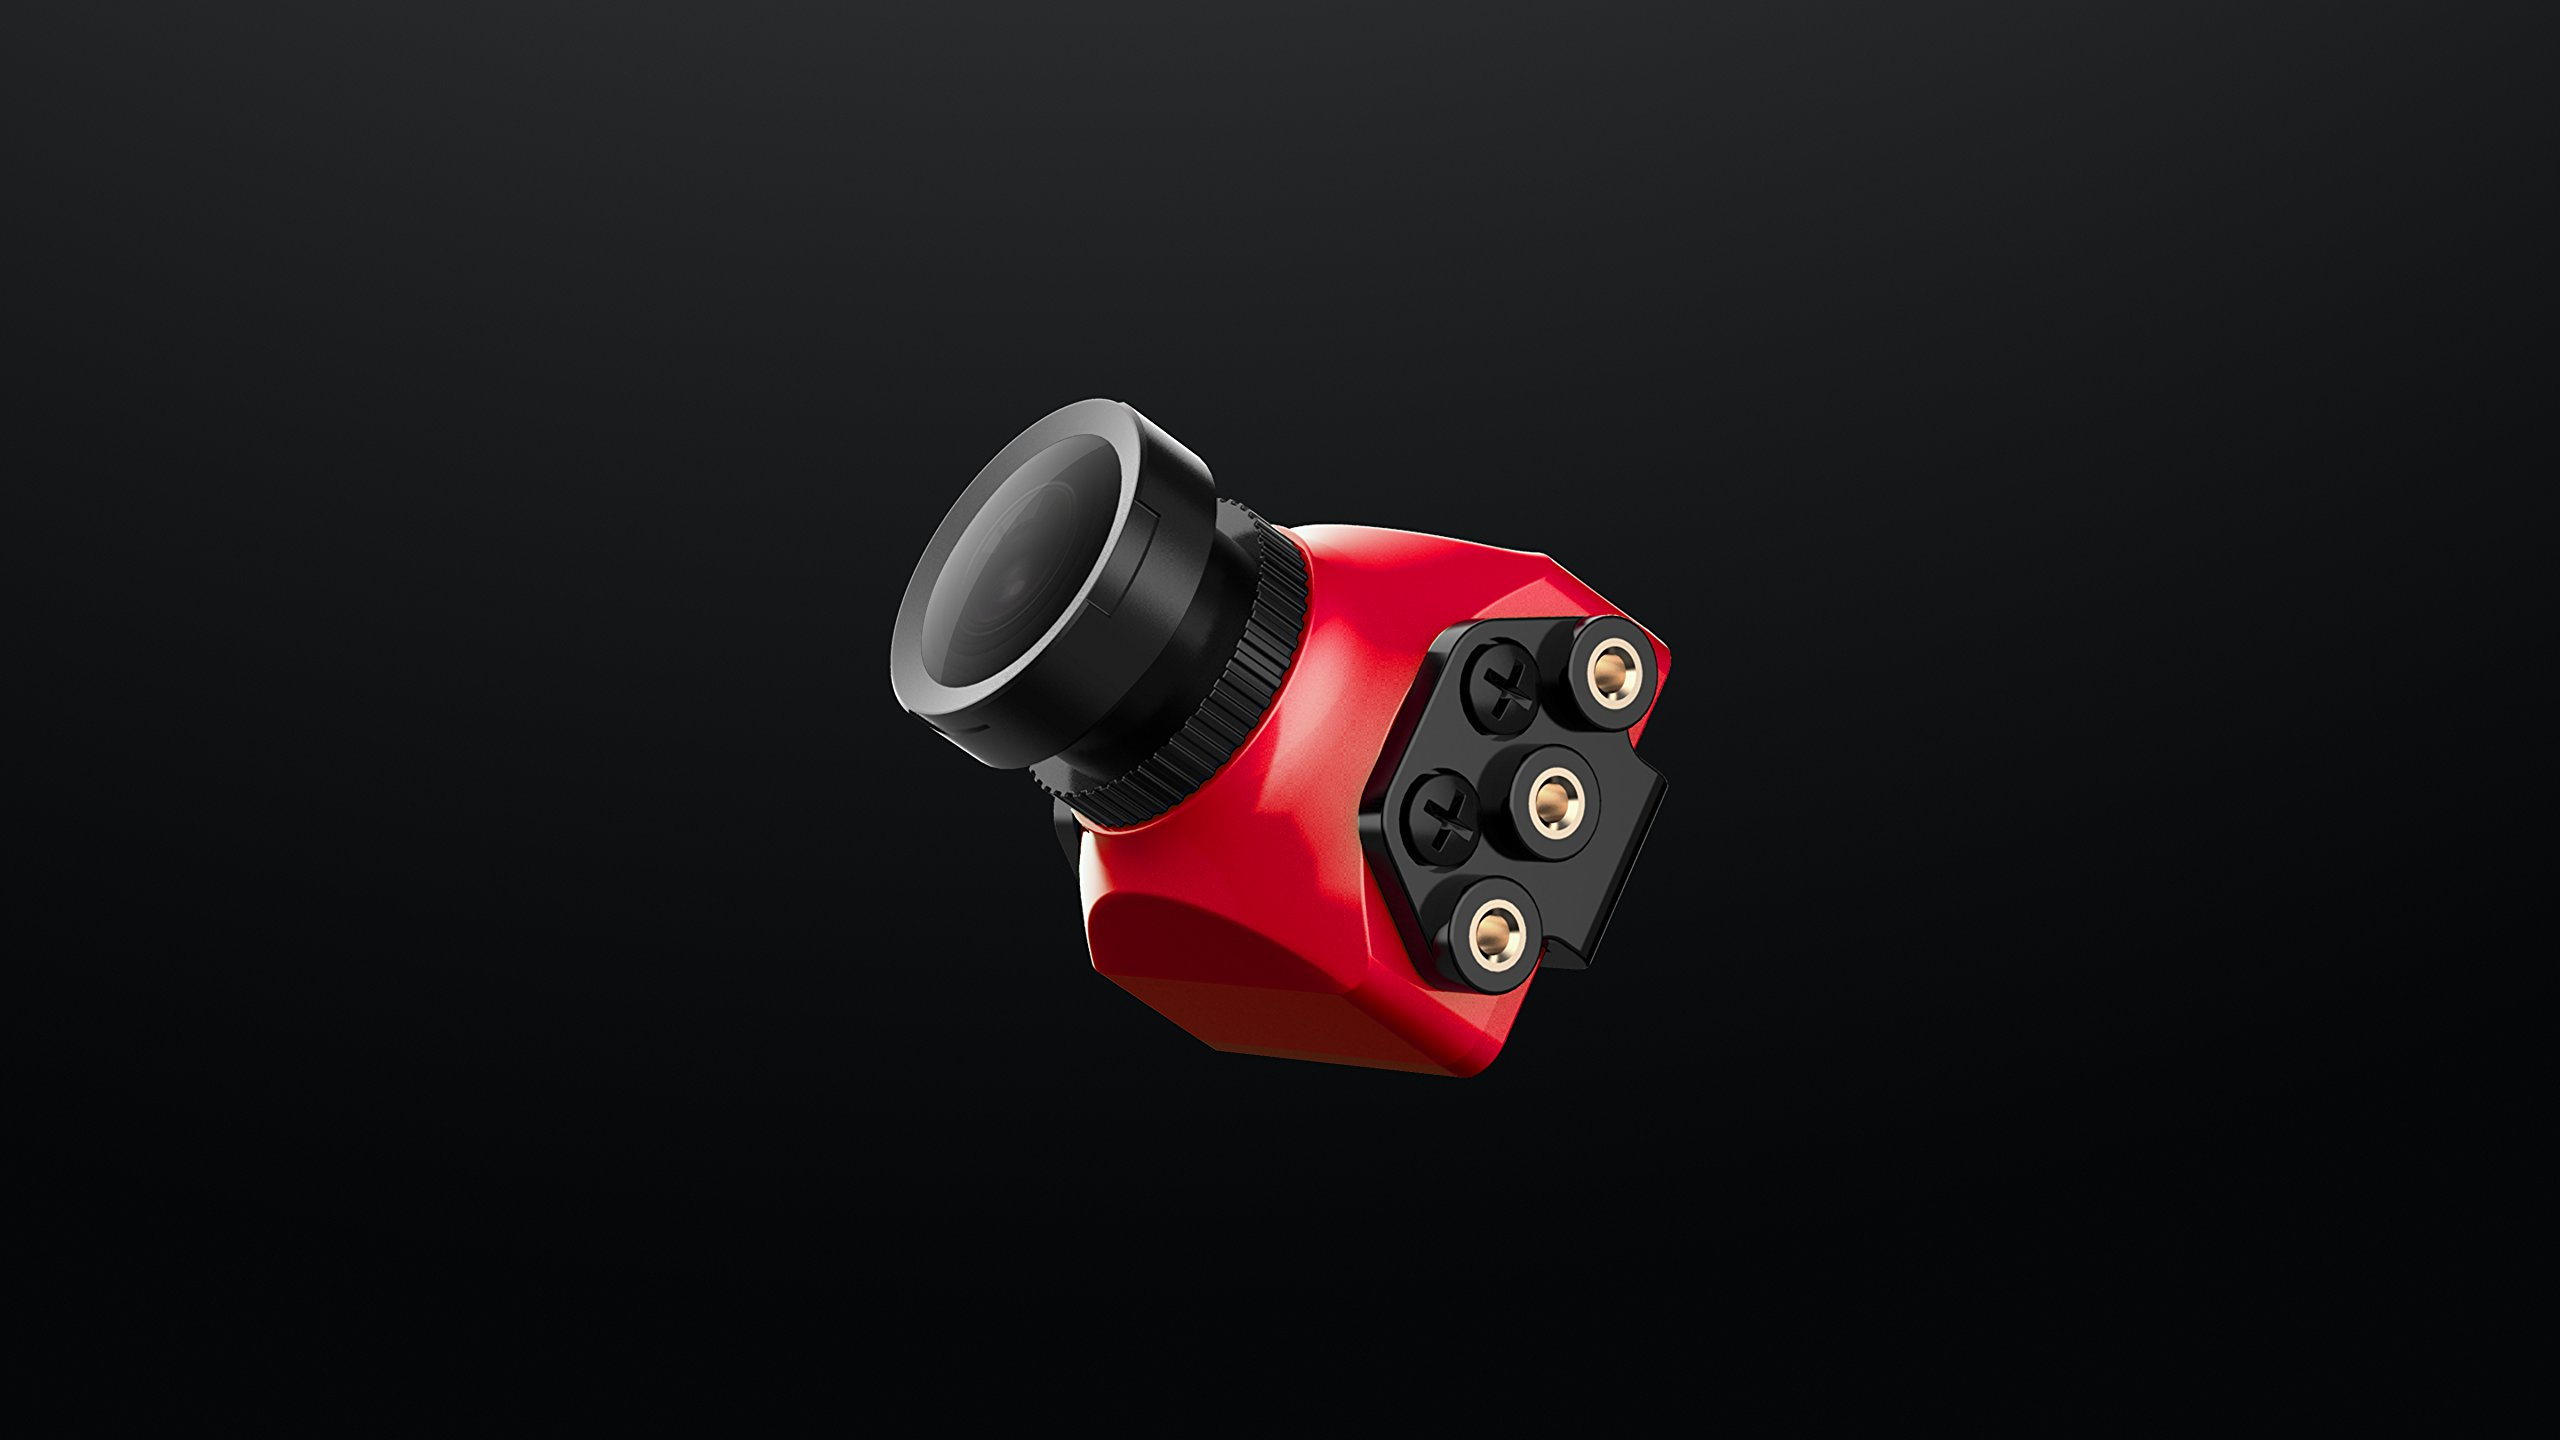 Foxeer 16:9 Widescreen 1200TVL 2.5mm Monster Mini Pro WDR FPV Camera - Red by Foxeer